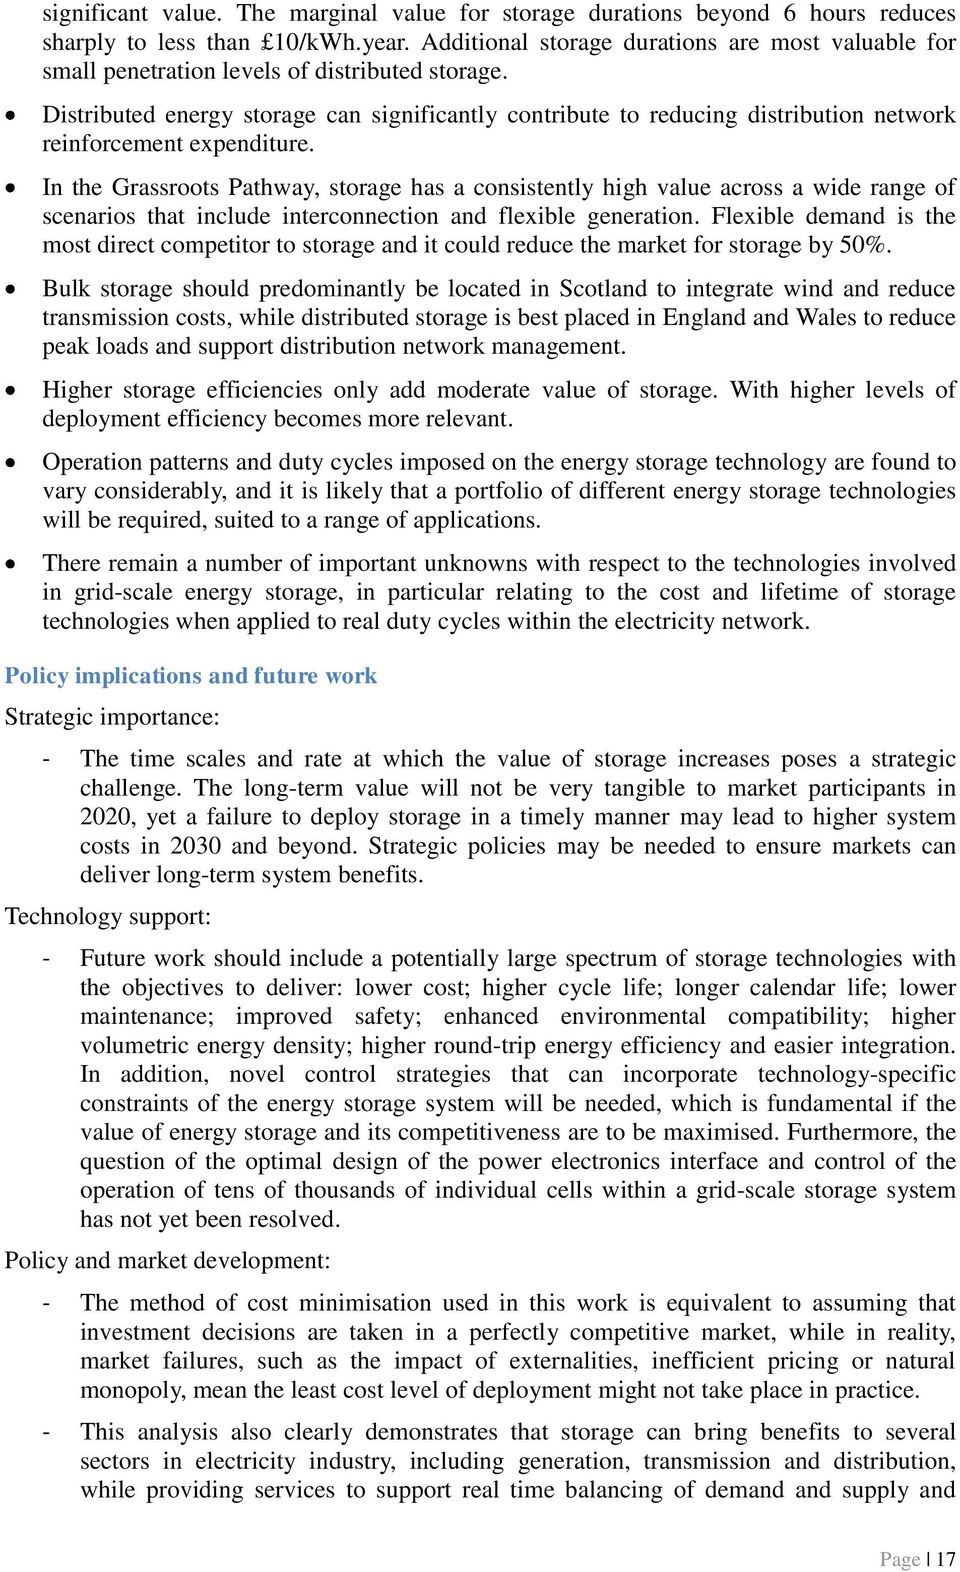 Distributed energy storage can significantly contribute to reducing distribution network reinforcement expenditure.